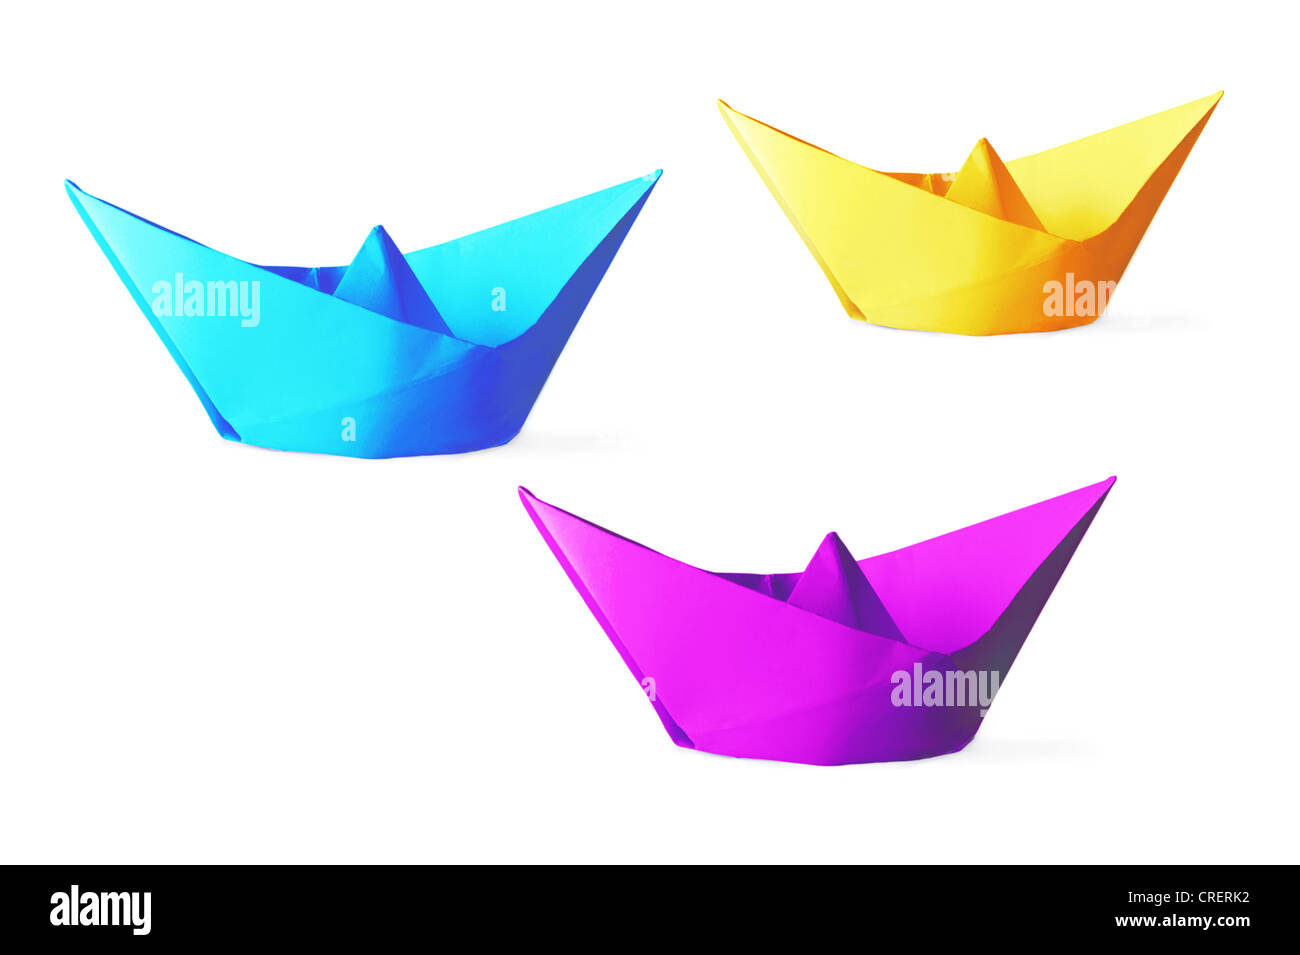 Colorful paper ships isolated on a white background - Stock Image